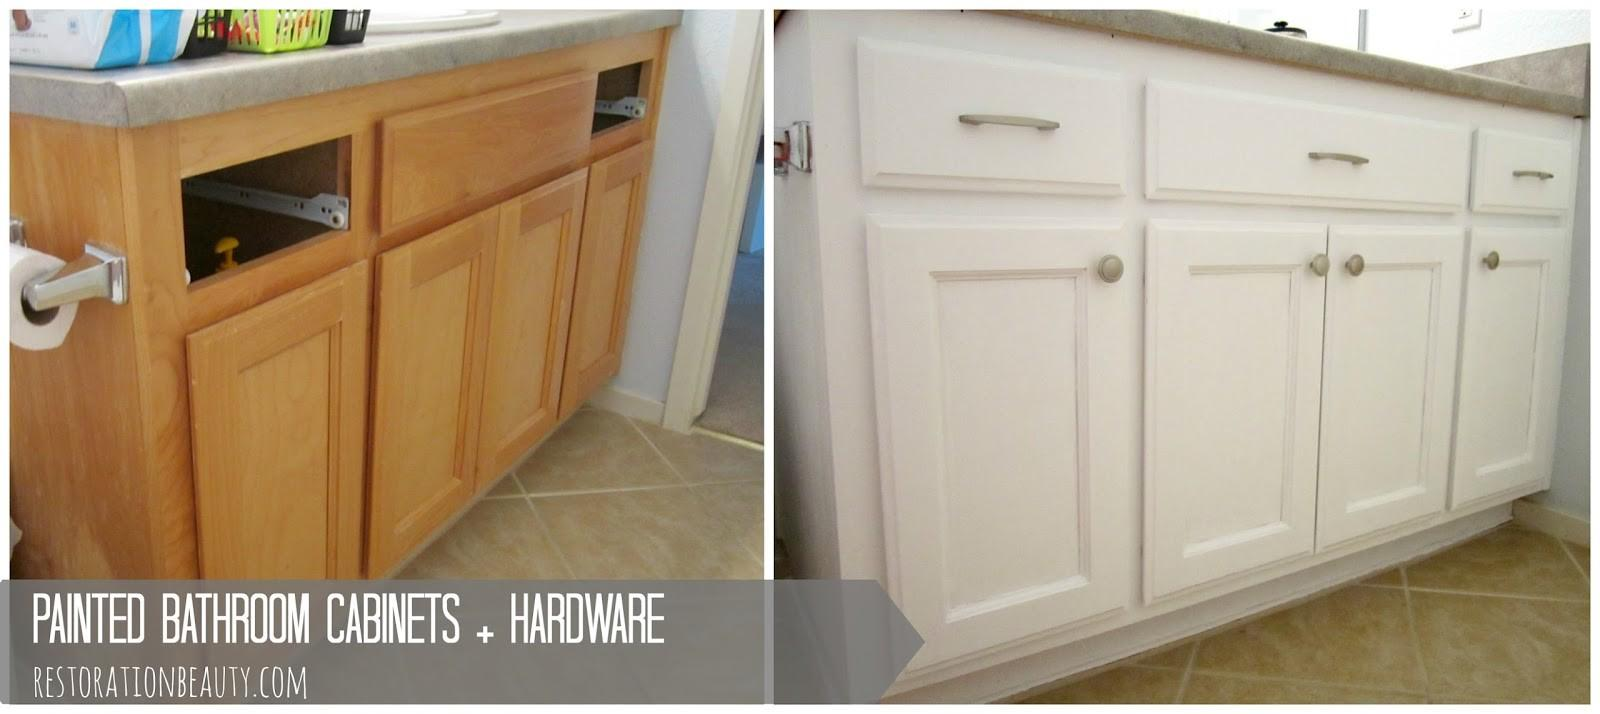 Restoration Beauty Painted Bathroom Cabinets Hardware